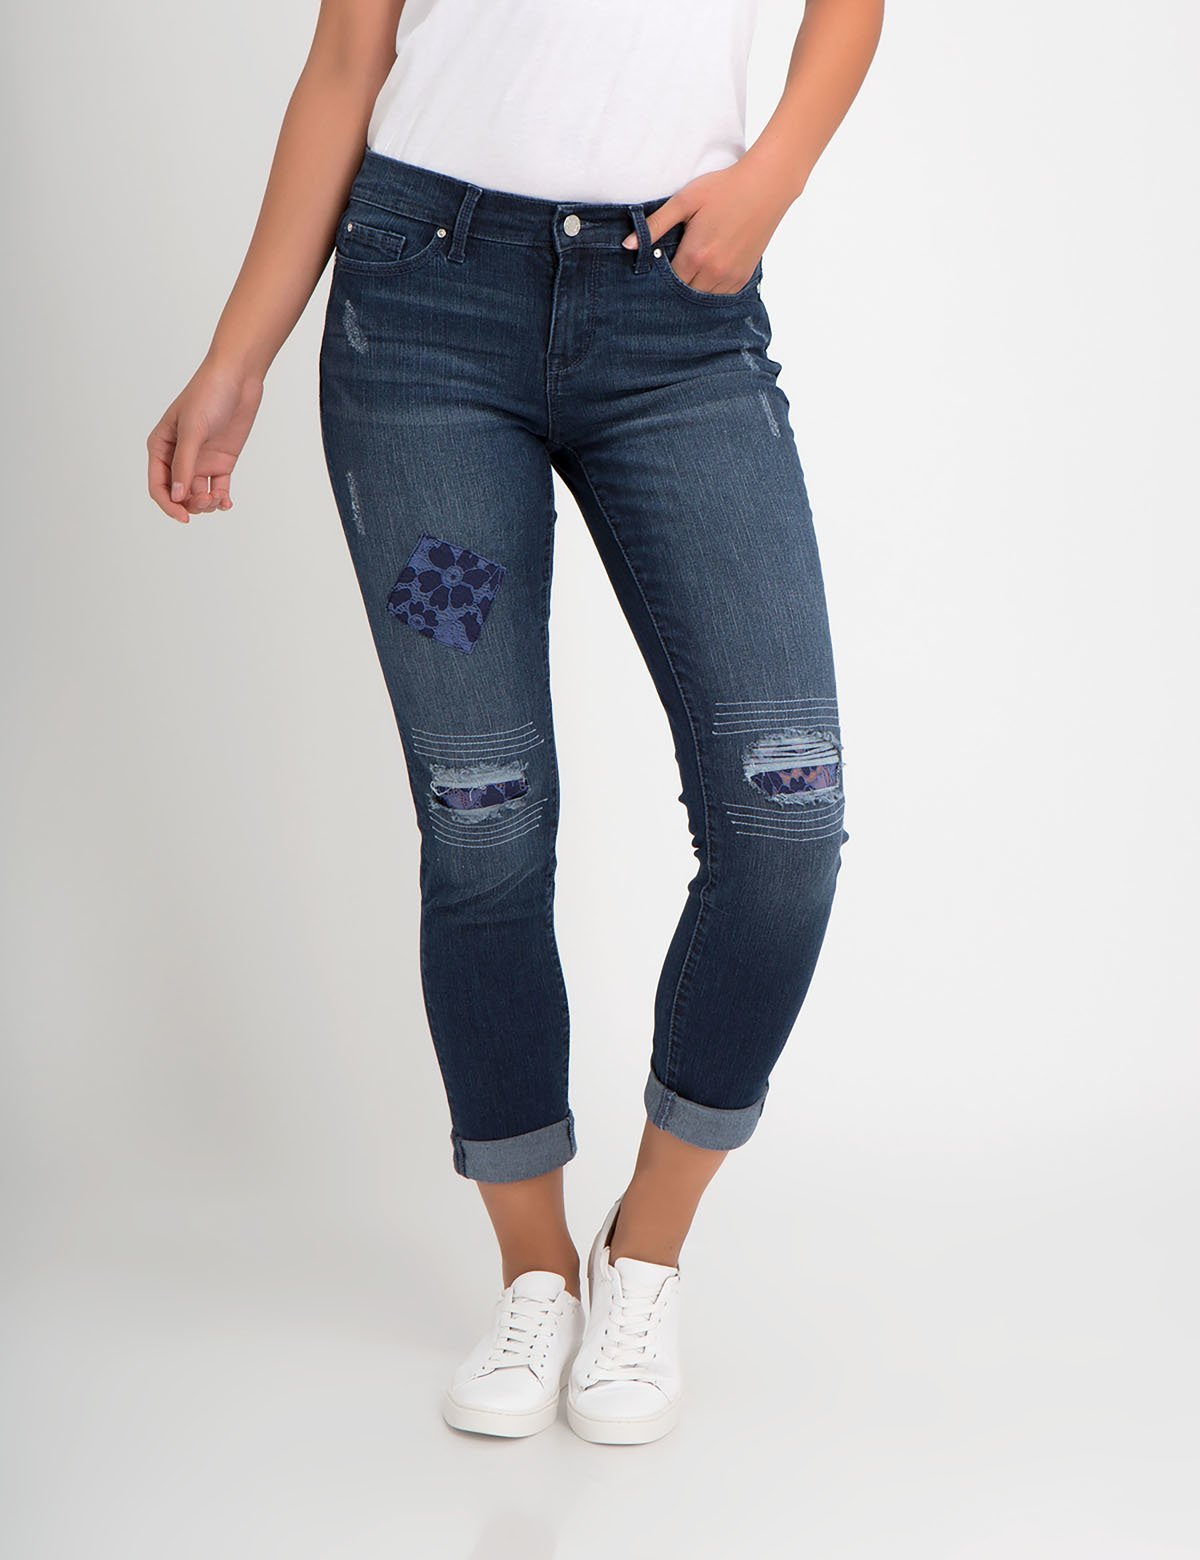 STRETCH RELAXED FIT PATCH AND DESTRUCTION JEAN - U.S. Polo Assn.